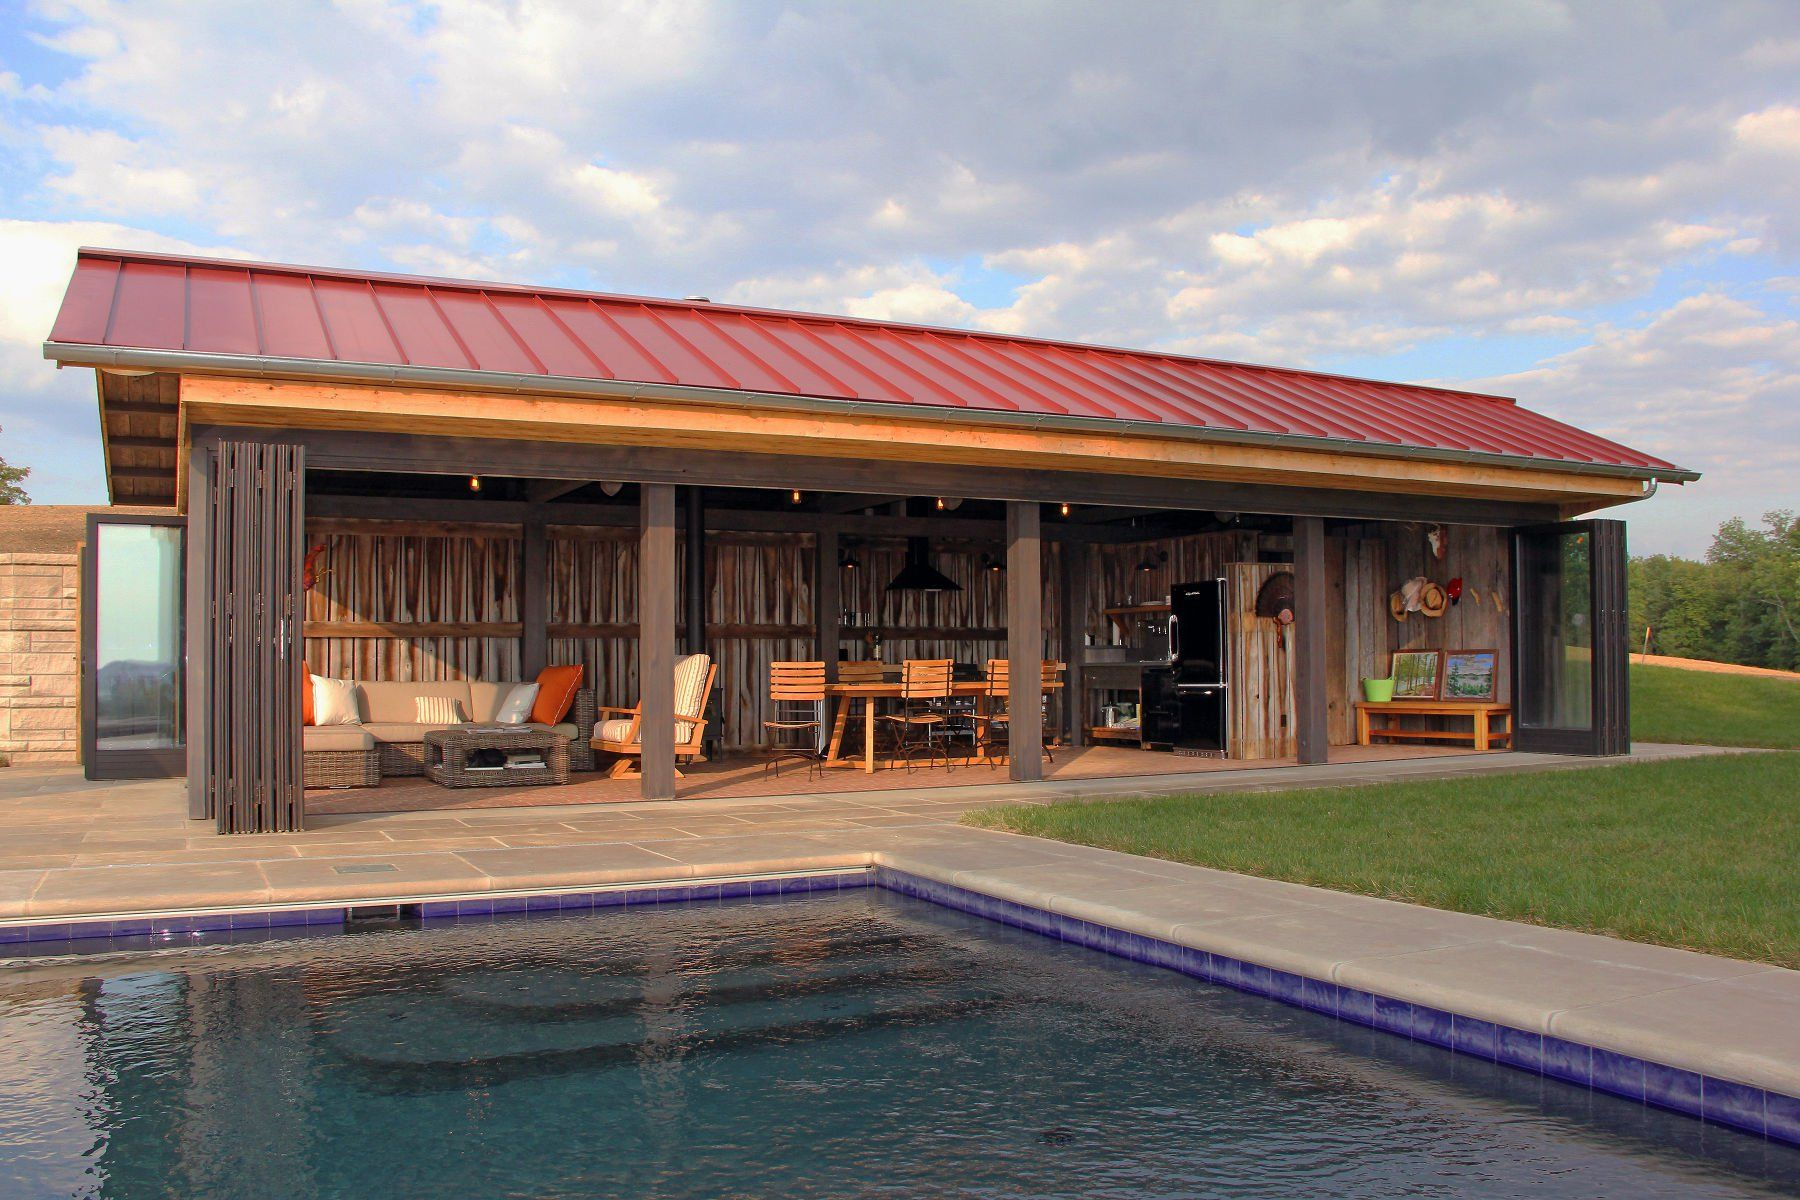 Stable Plans Living Quarters Pole Barn Garage Buildings Plans Beautiful Metal Home Pool House Designs Metal Building Homes Metal Building House Plans